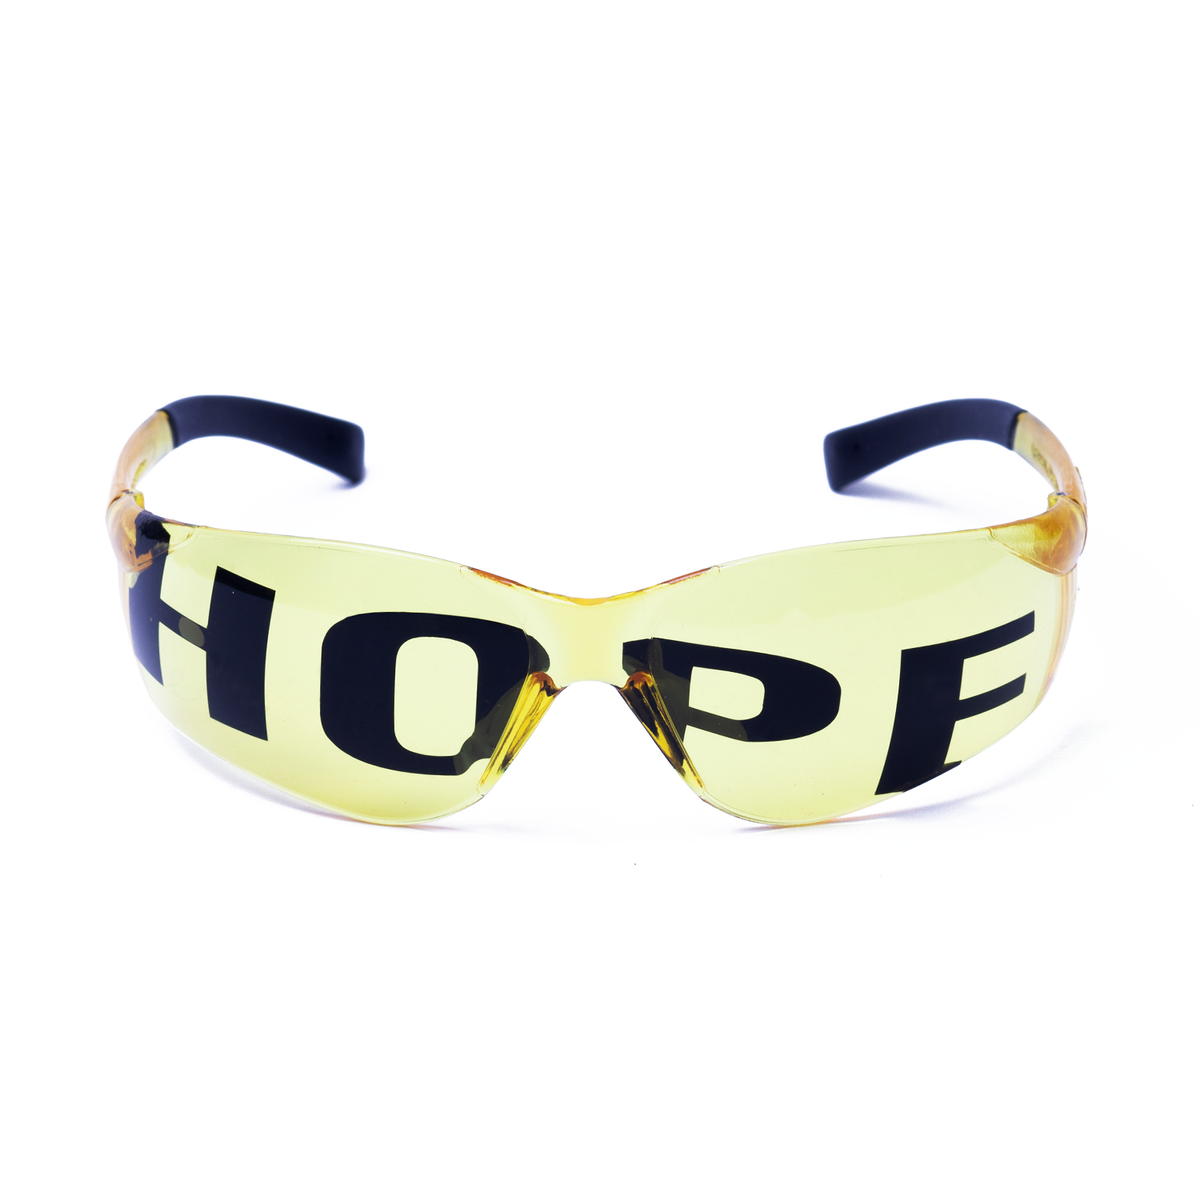 SPEAK VOLUMES COLLECTION HOPE SUNNIES + OPTICS Sunglasses Collection- NRODA